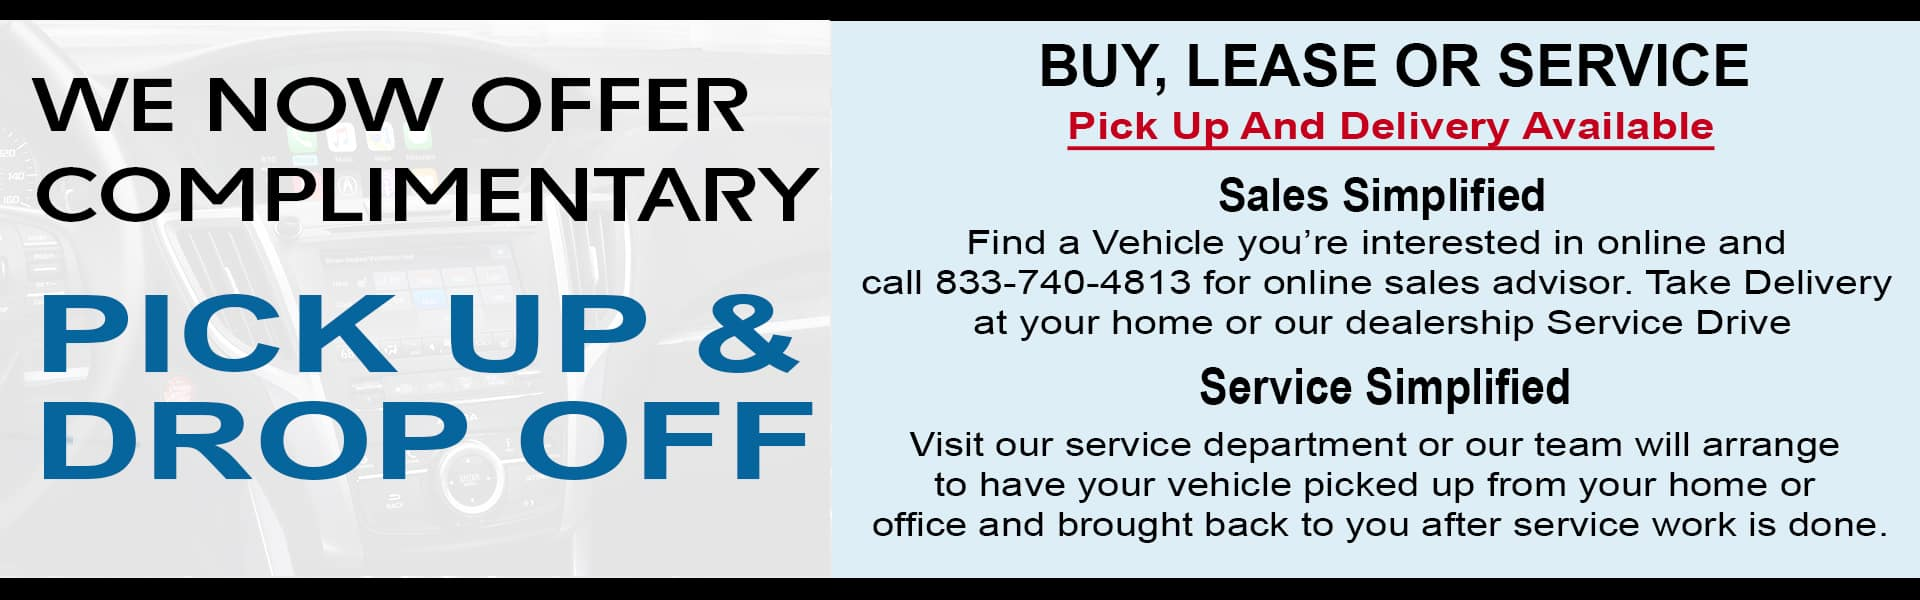 Acura Delivery Services